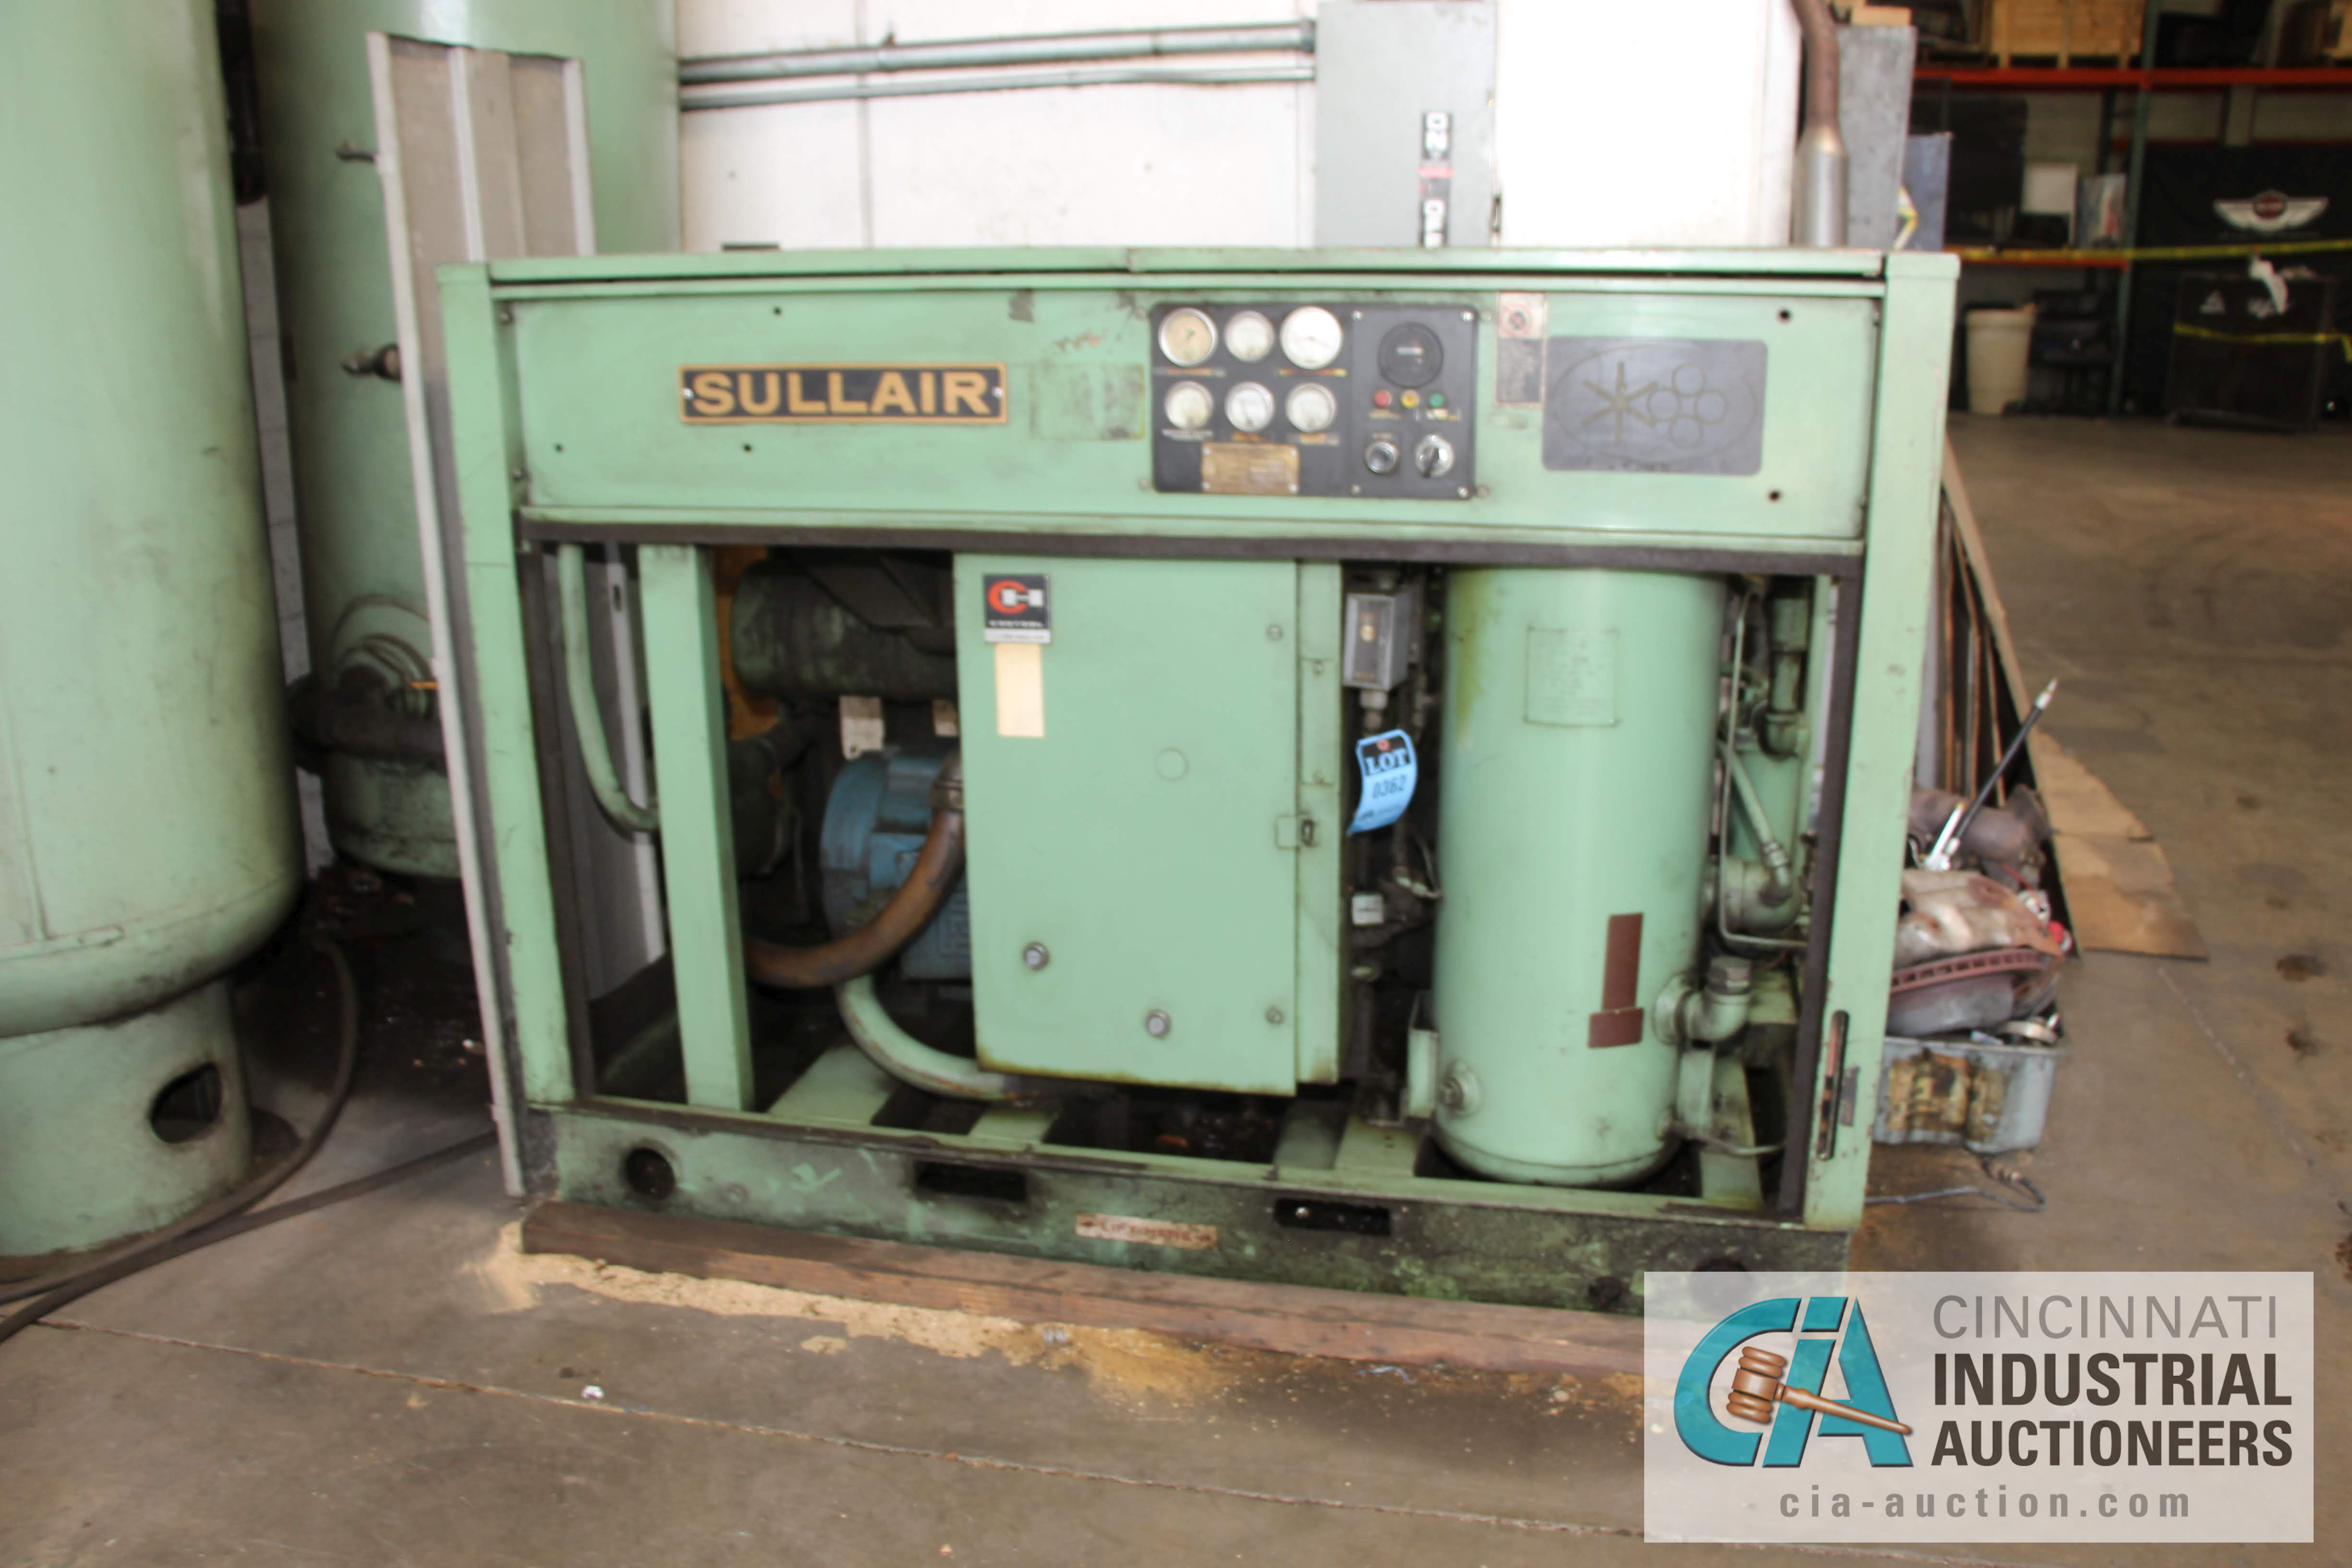 50 HP SULLAIR MODEL 12B-50L ROTARY SCREW AIR COMPRESOR - $50.00 Rigging Fee Due to Onsite Rigger -